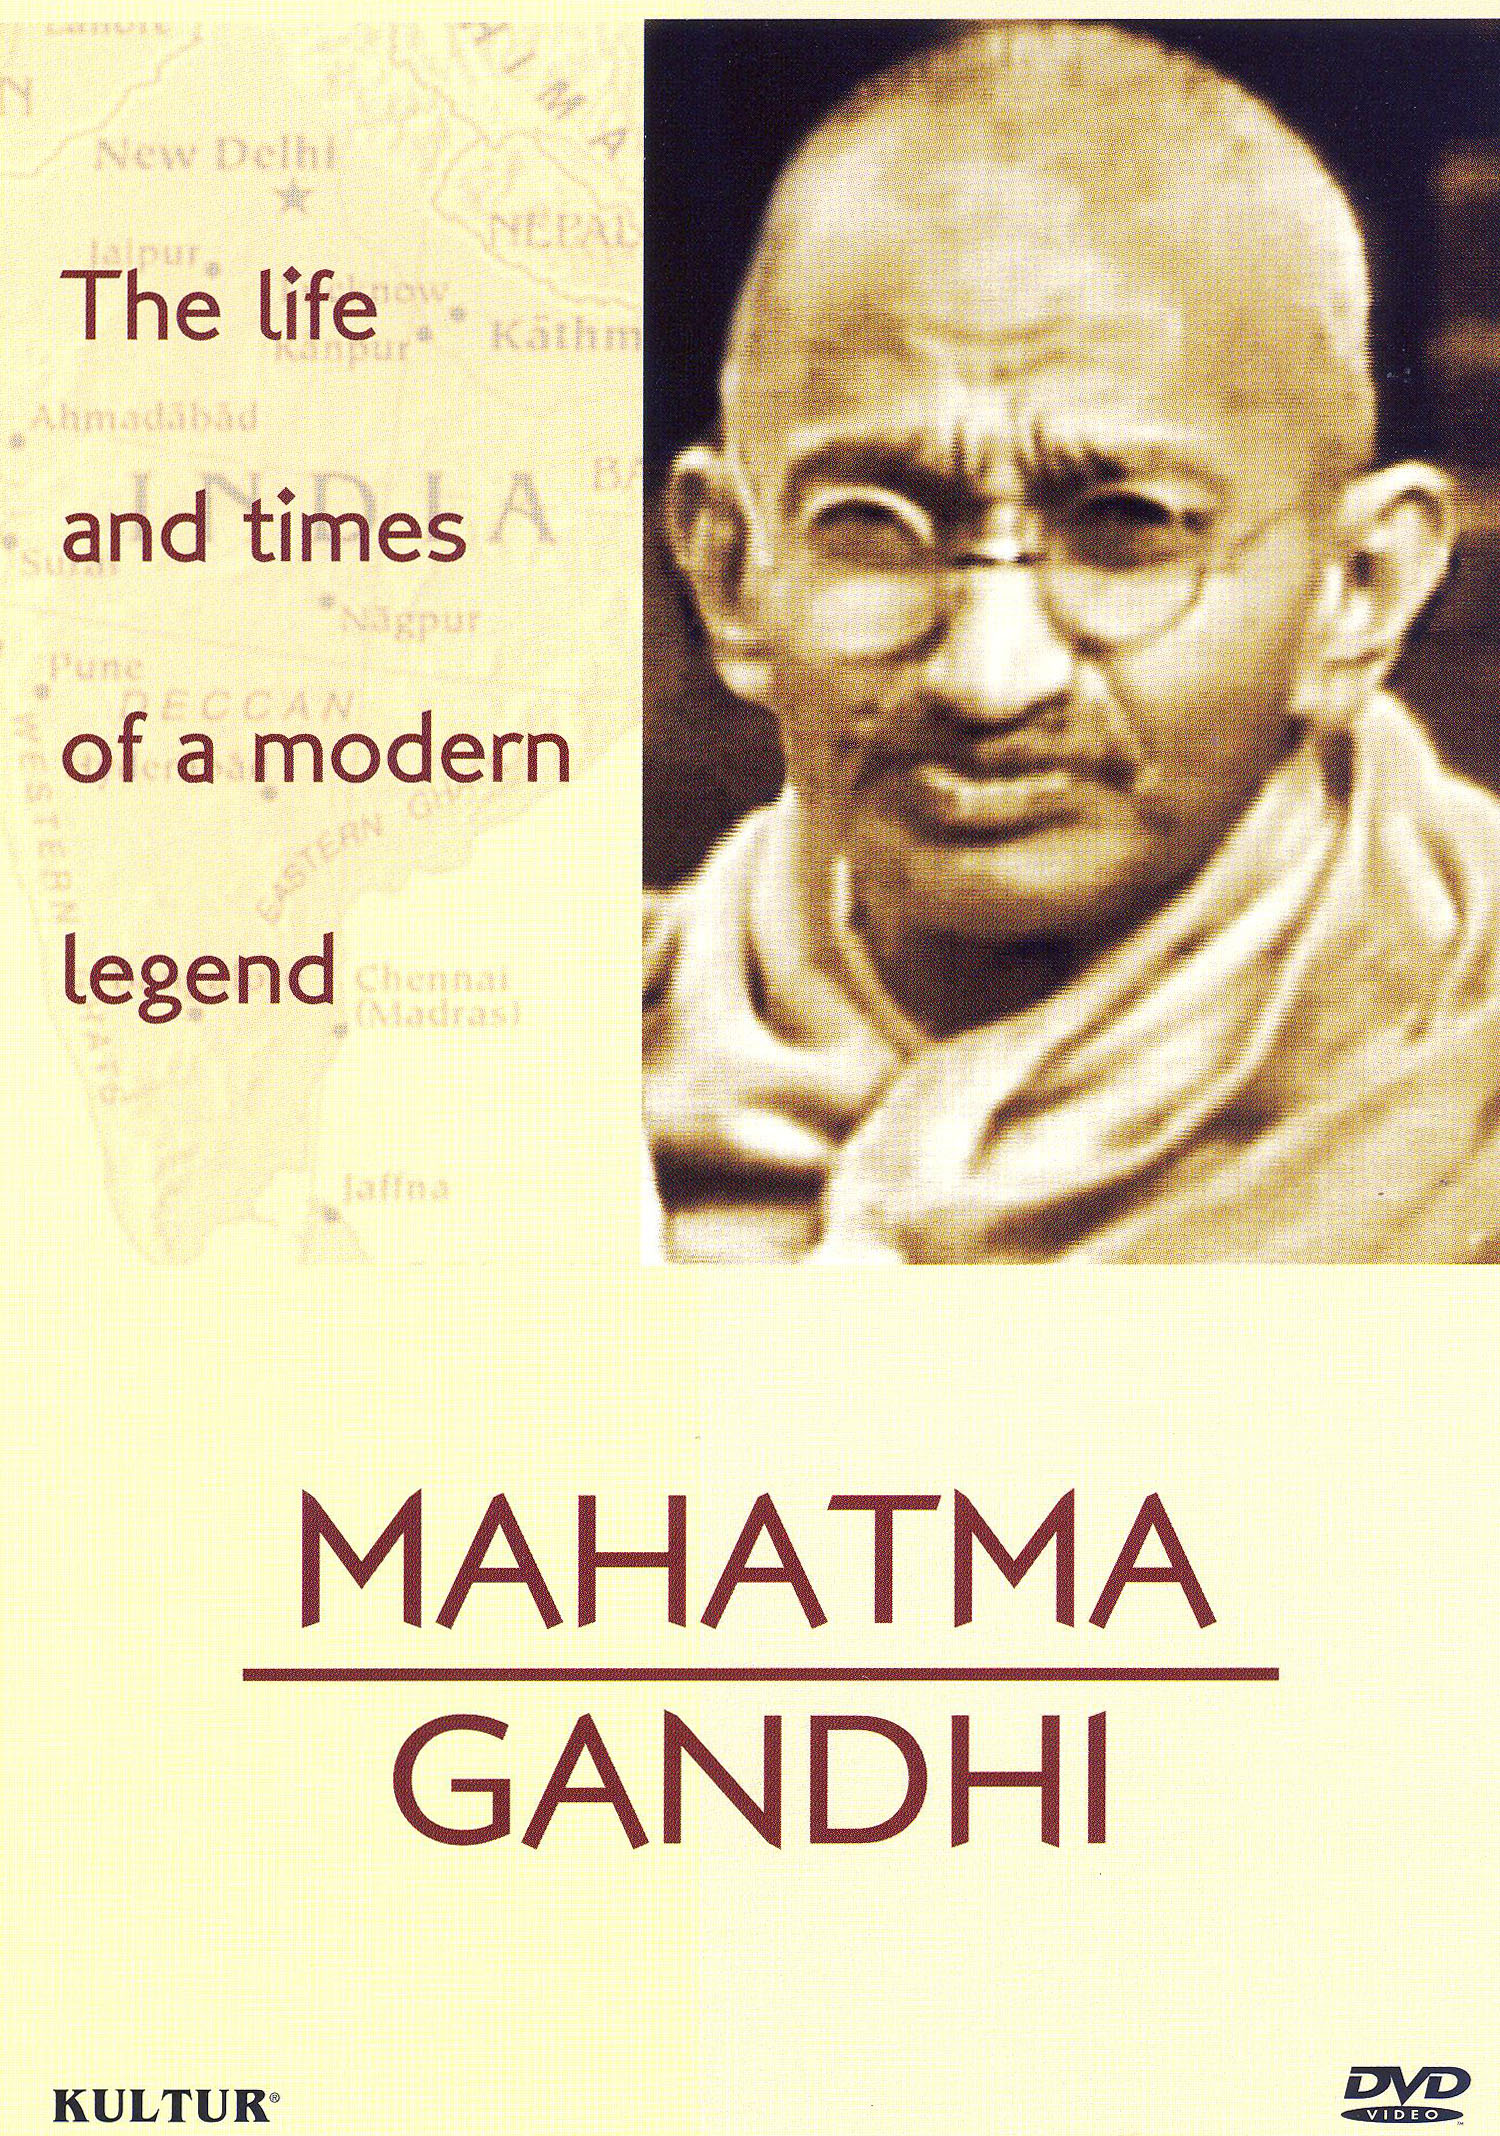 the life and times of mahatma gandhi